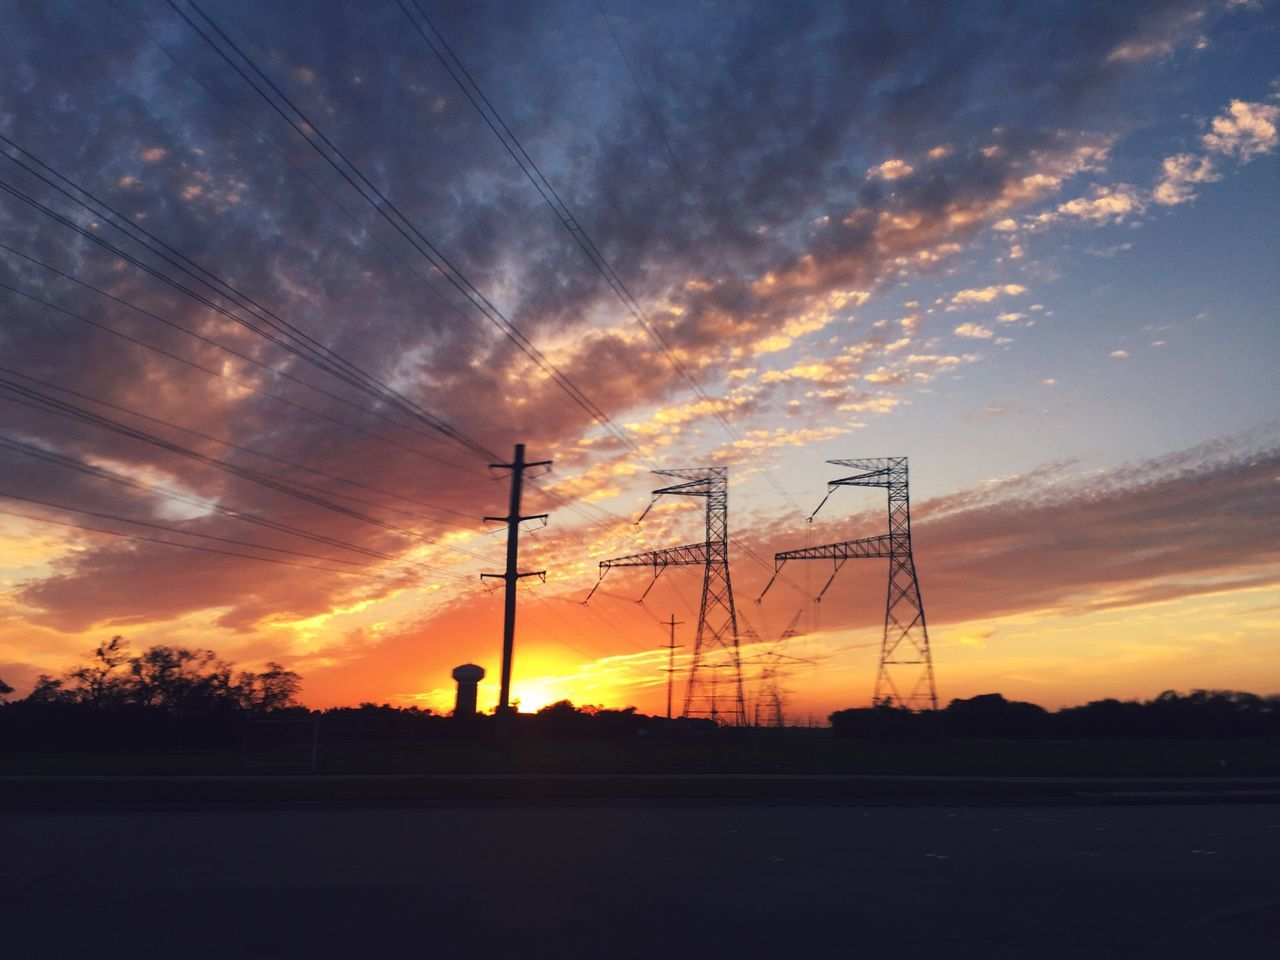 sunset, cable, electricity, electricity pylon, fuel and power generation, connection, silhouette, cloud - sky, sky, power supply, power line, technology, no people, nature, tranquility, outdoors, tree, landscape, beauty in nature, scenics, day